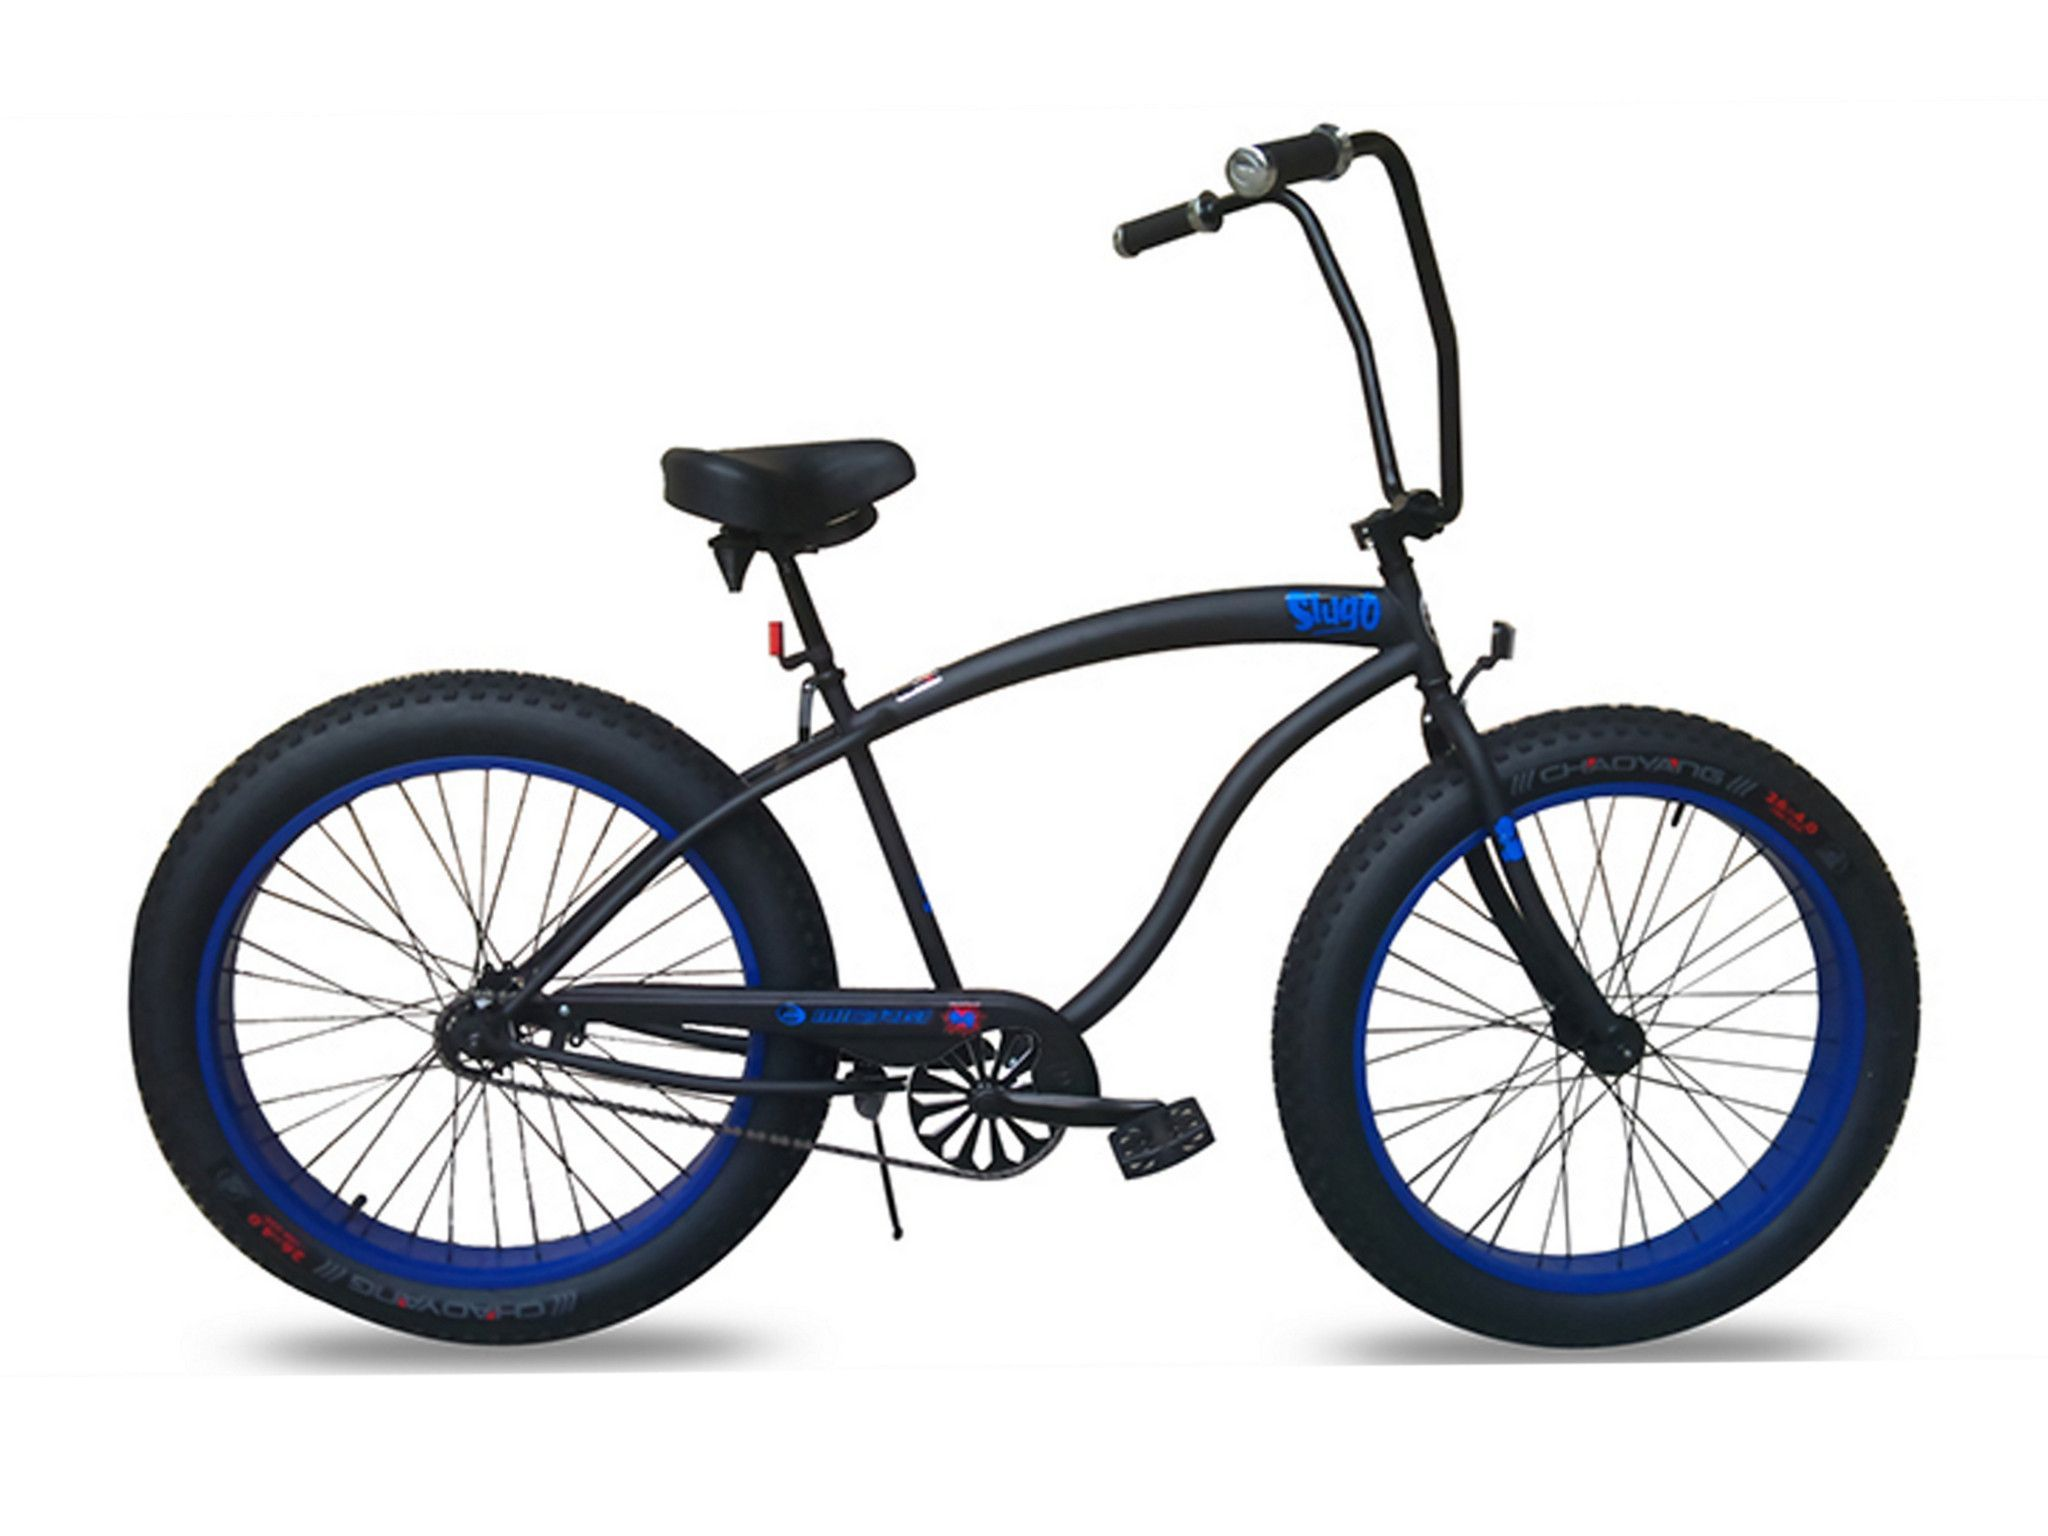 Beach Cruiser Frames  The Ultimate Guide to help you choose!